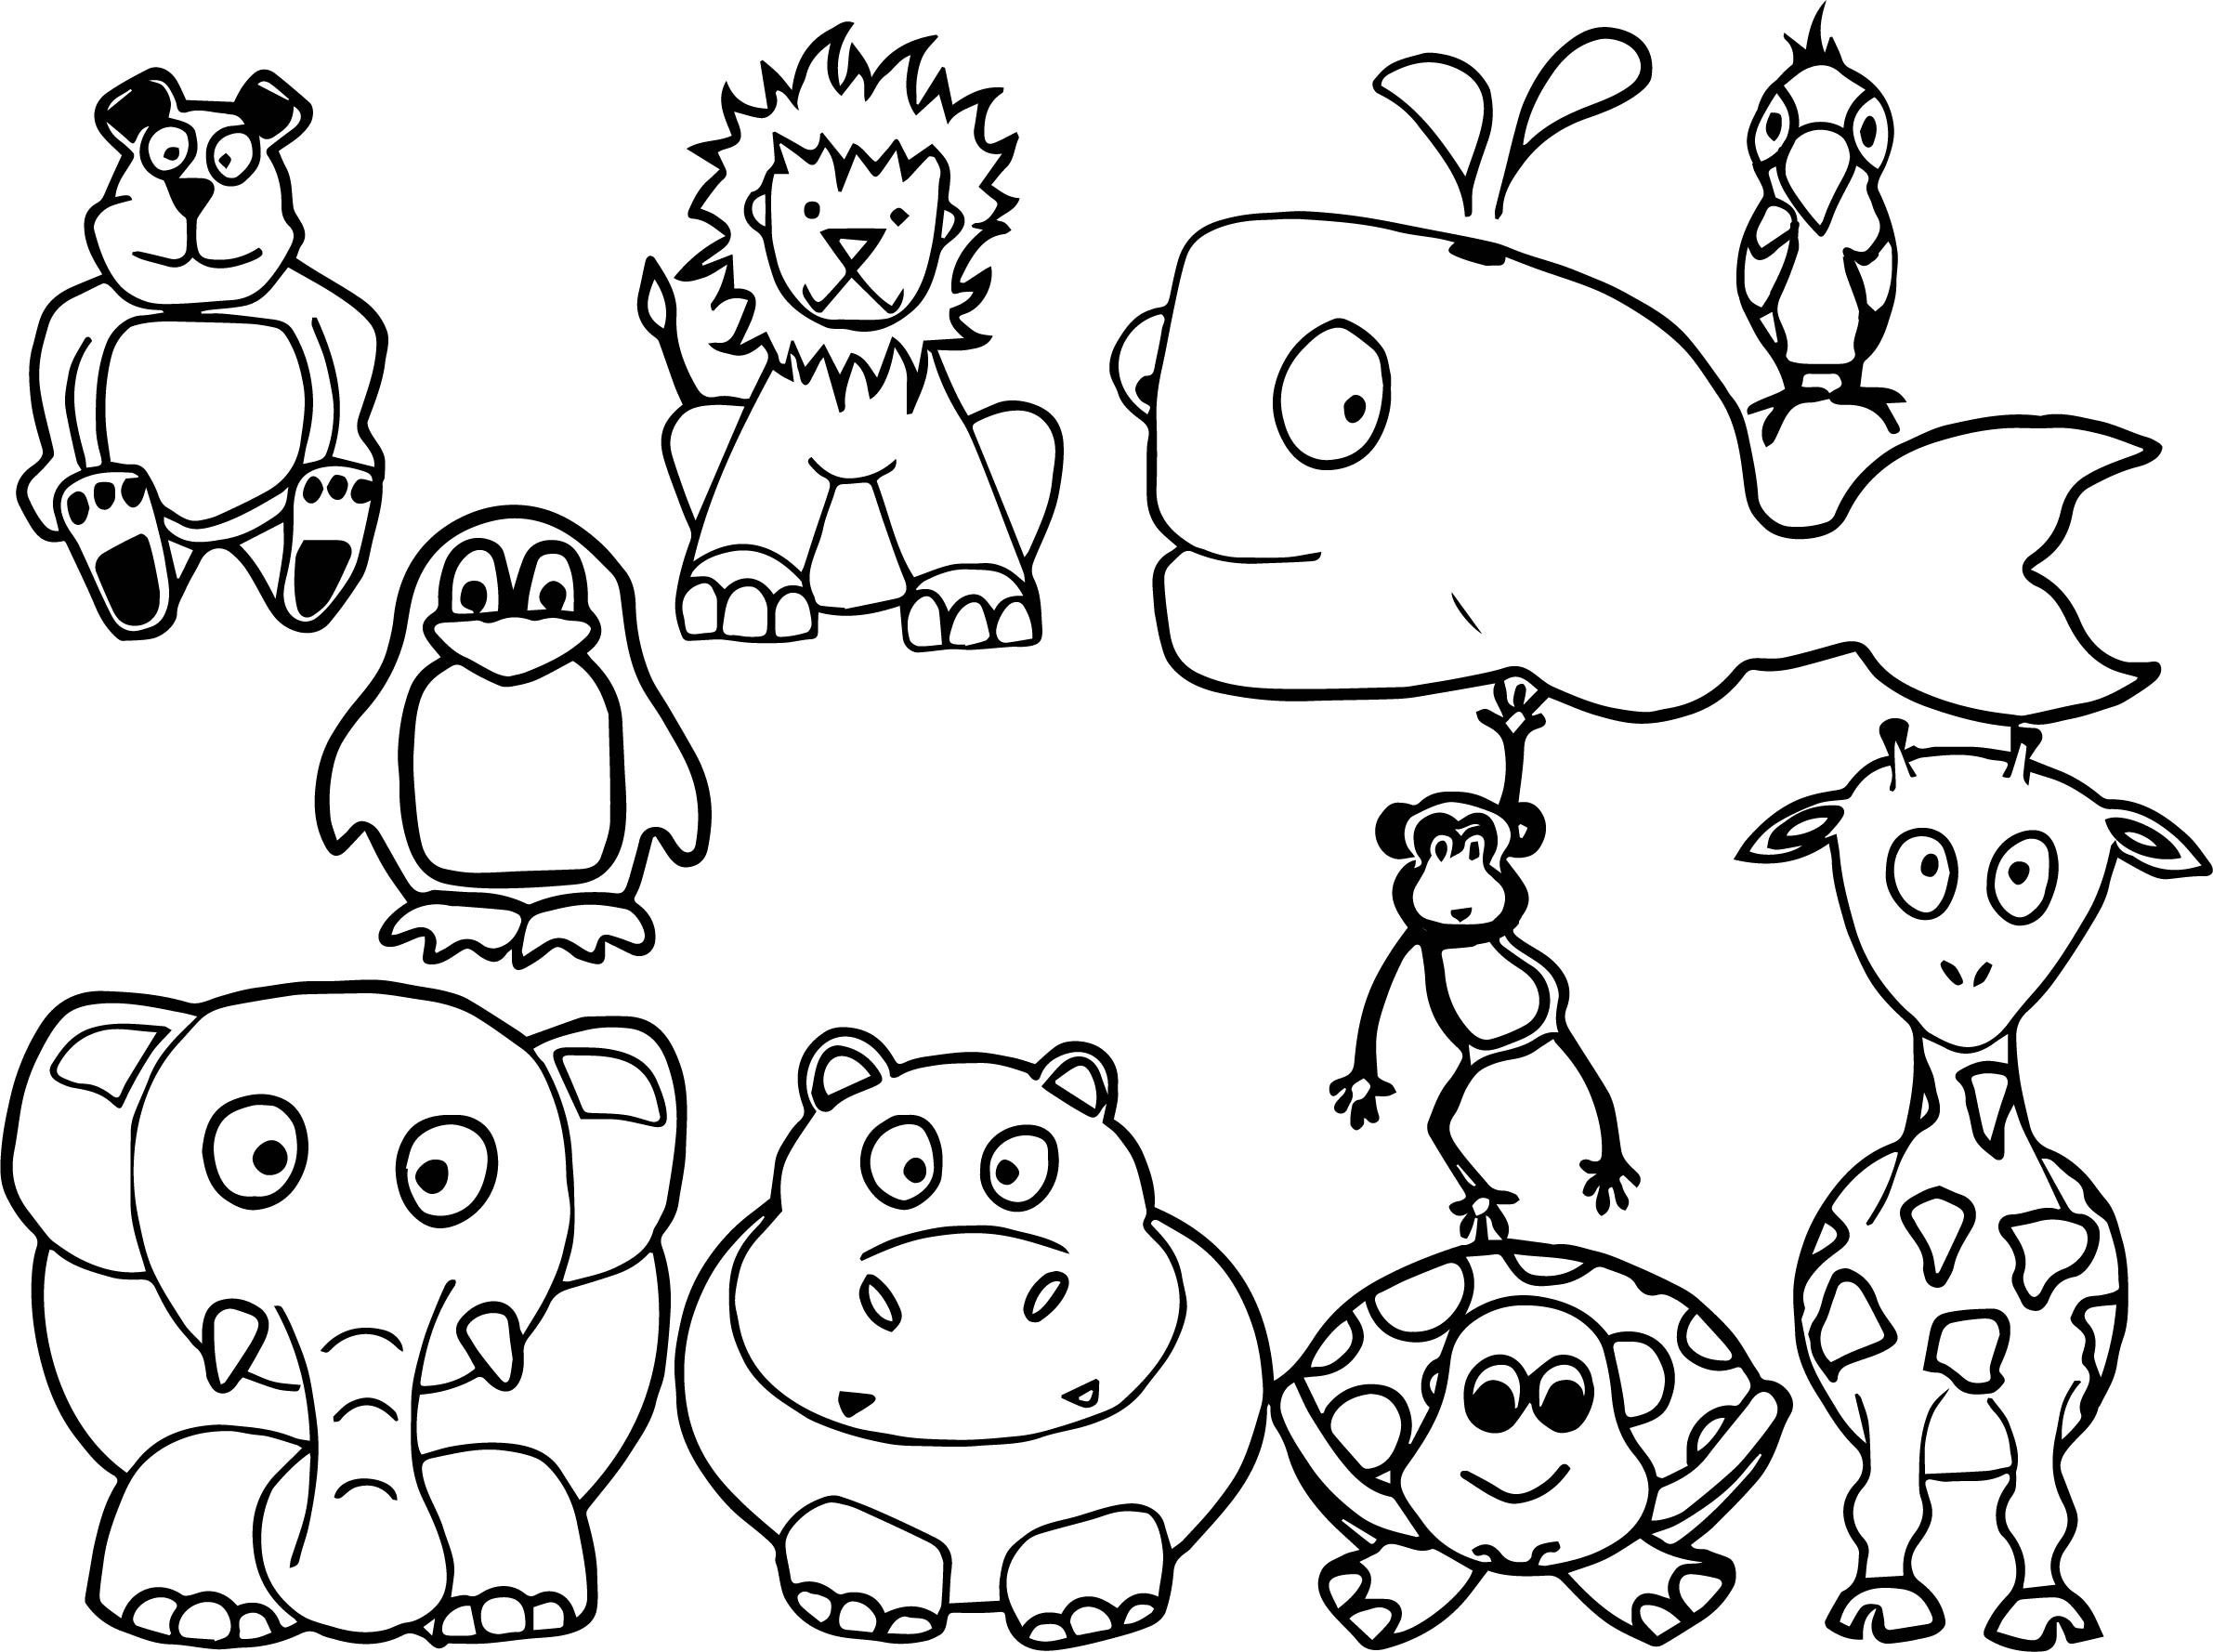 Animal Coloring Pages - Best Coloring Pages For Kids | coloring pages for farm animals